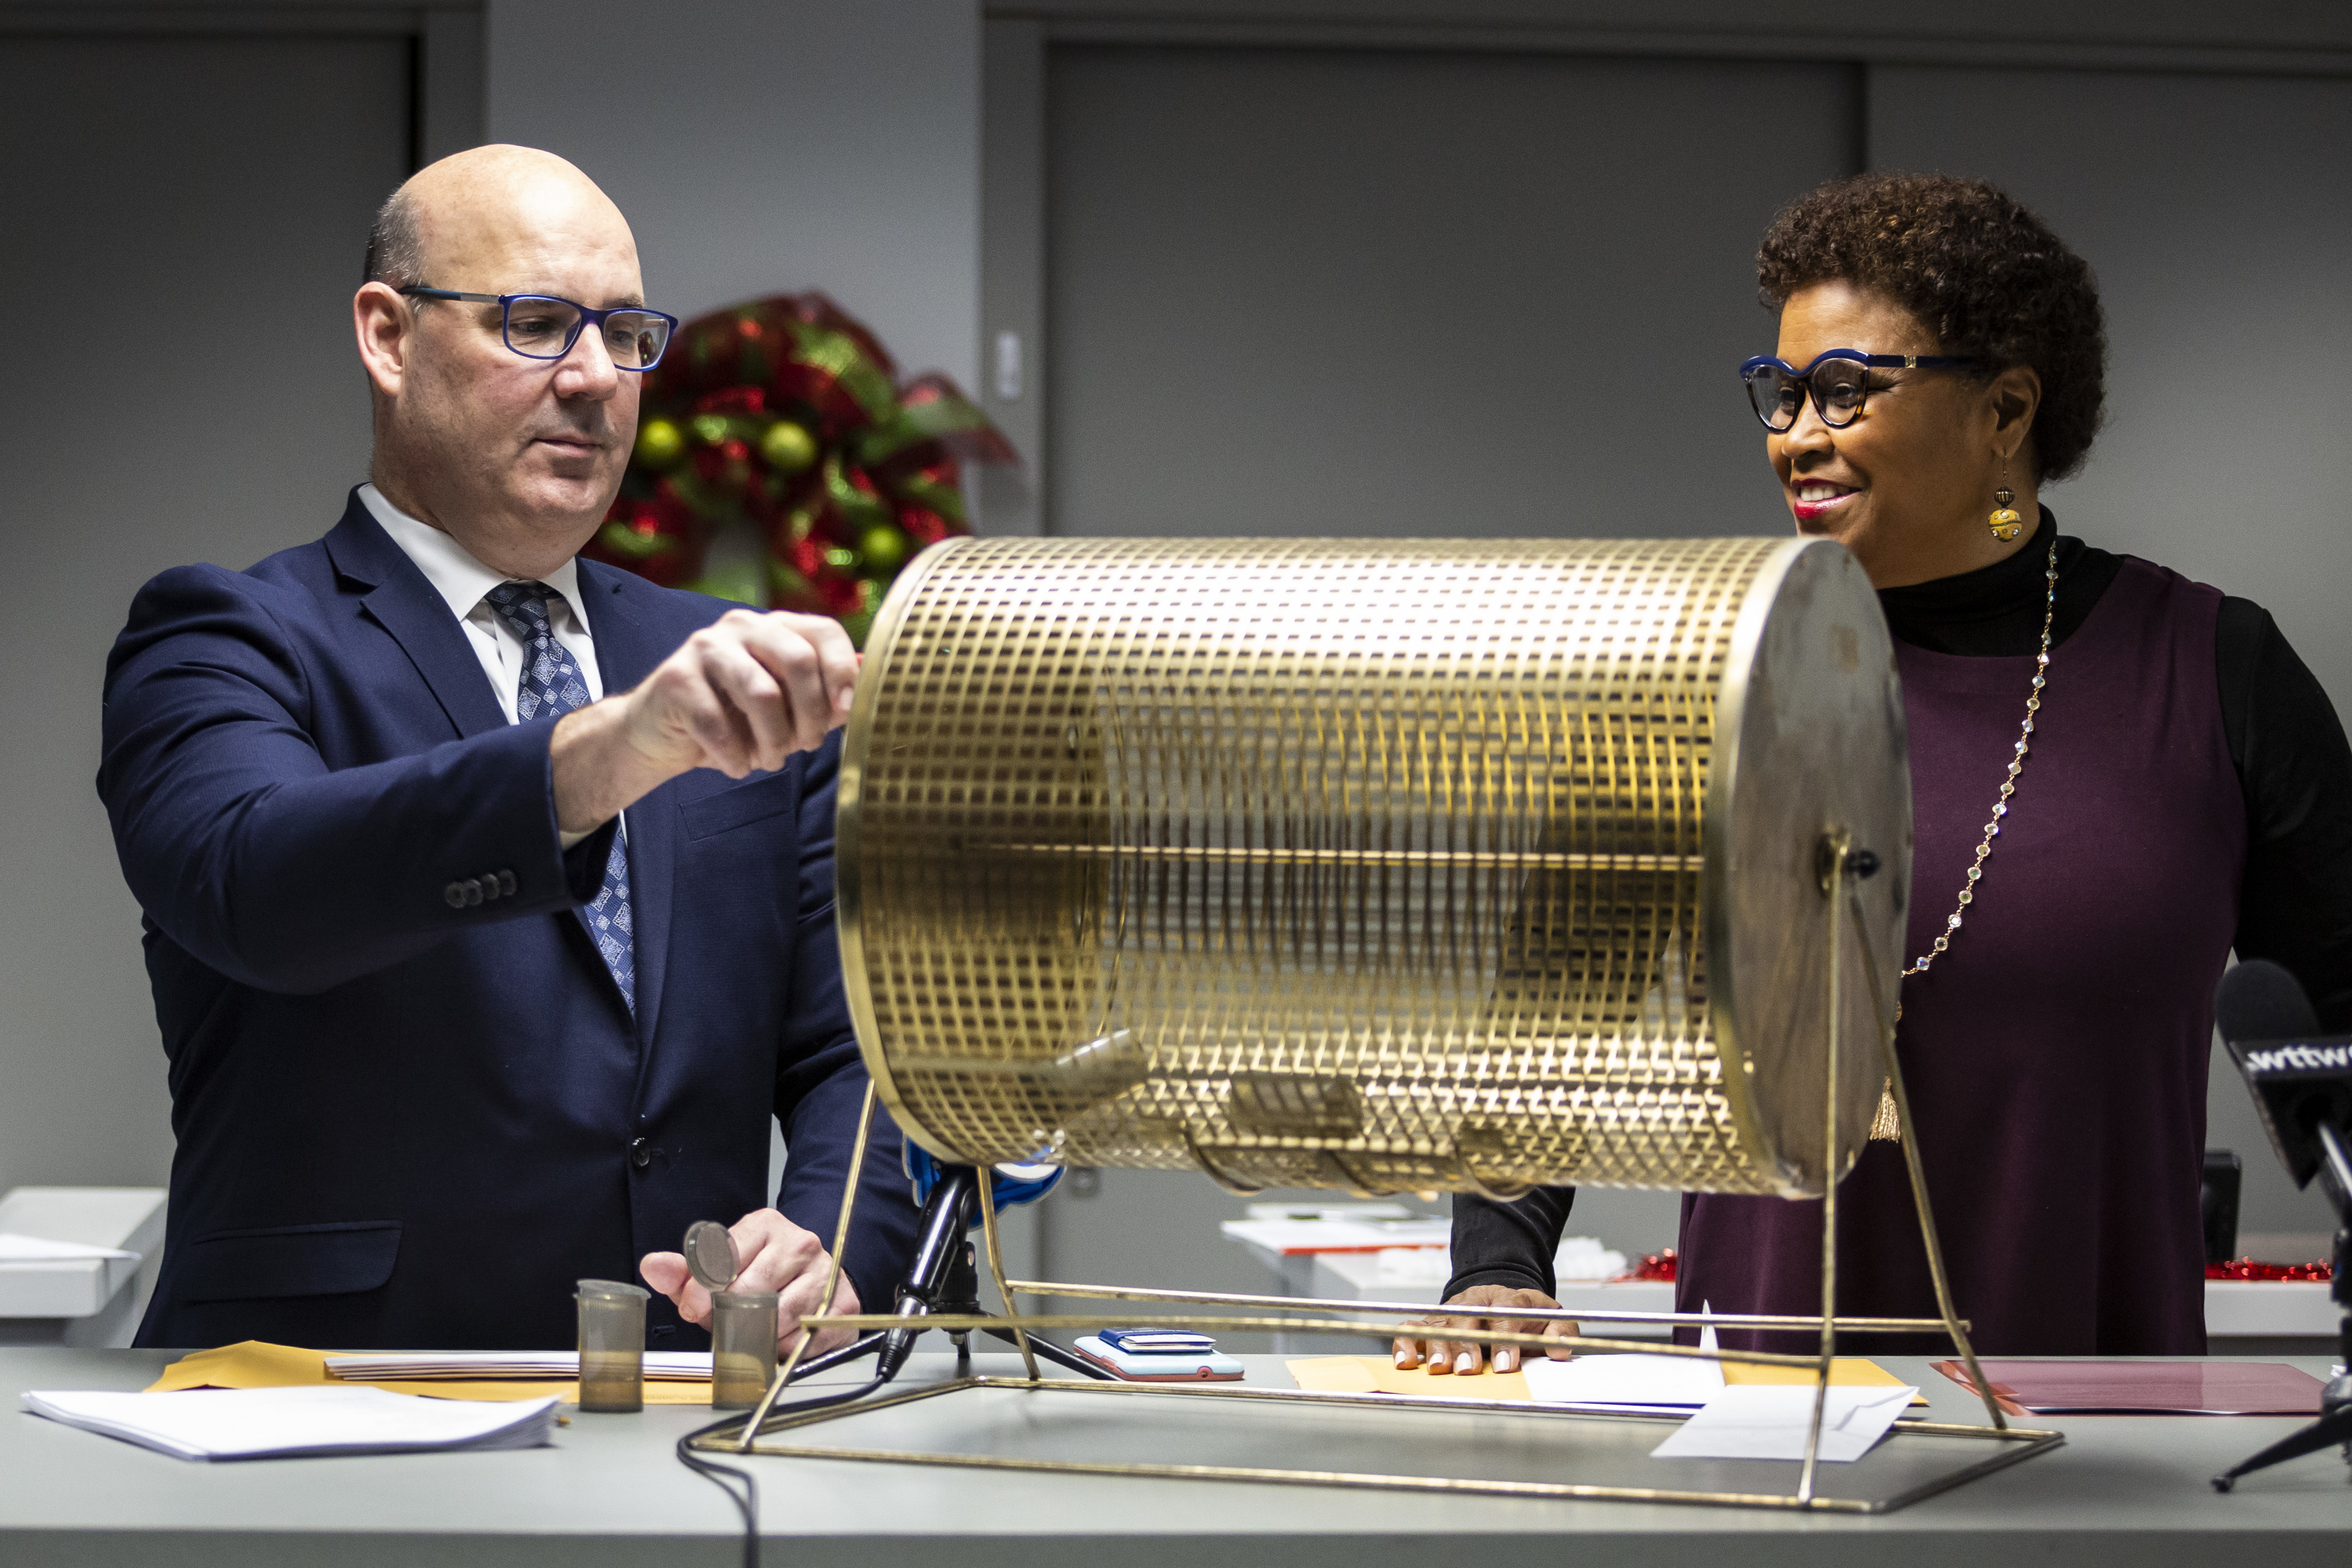 Deputy Clerk Edmund Michalowski spins a golden lottery basket for Cook County Clerk Karen Yarbrough to pull candidates' names and determine their positions on the 2020 Presidential Primary Election ballot, Monday morning, Dec. 9, 2019.